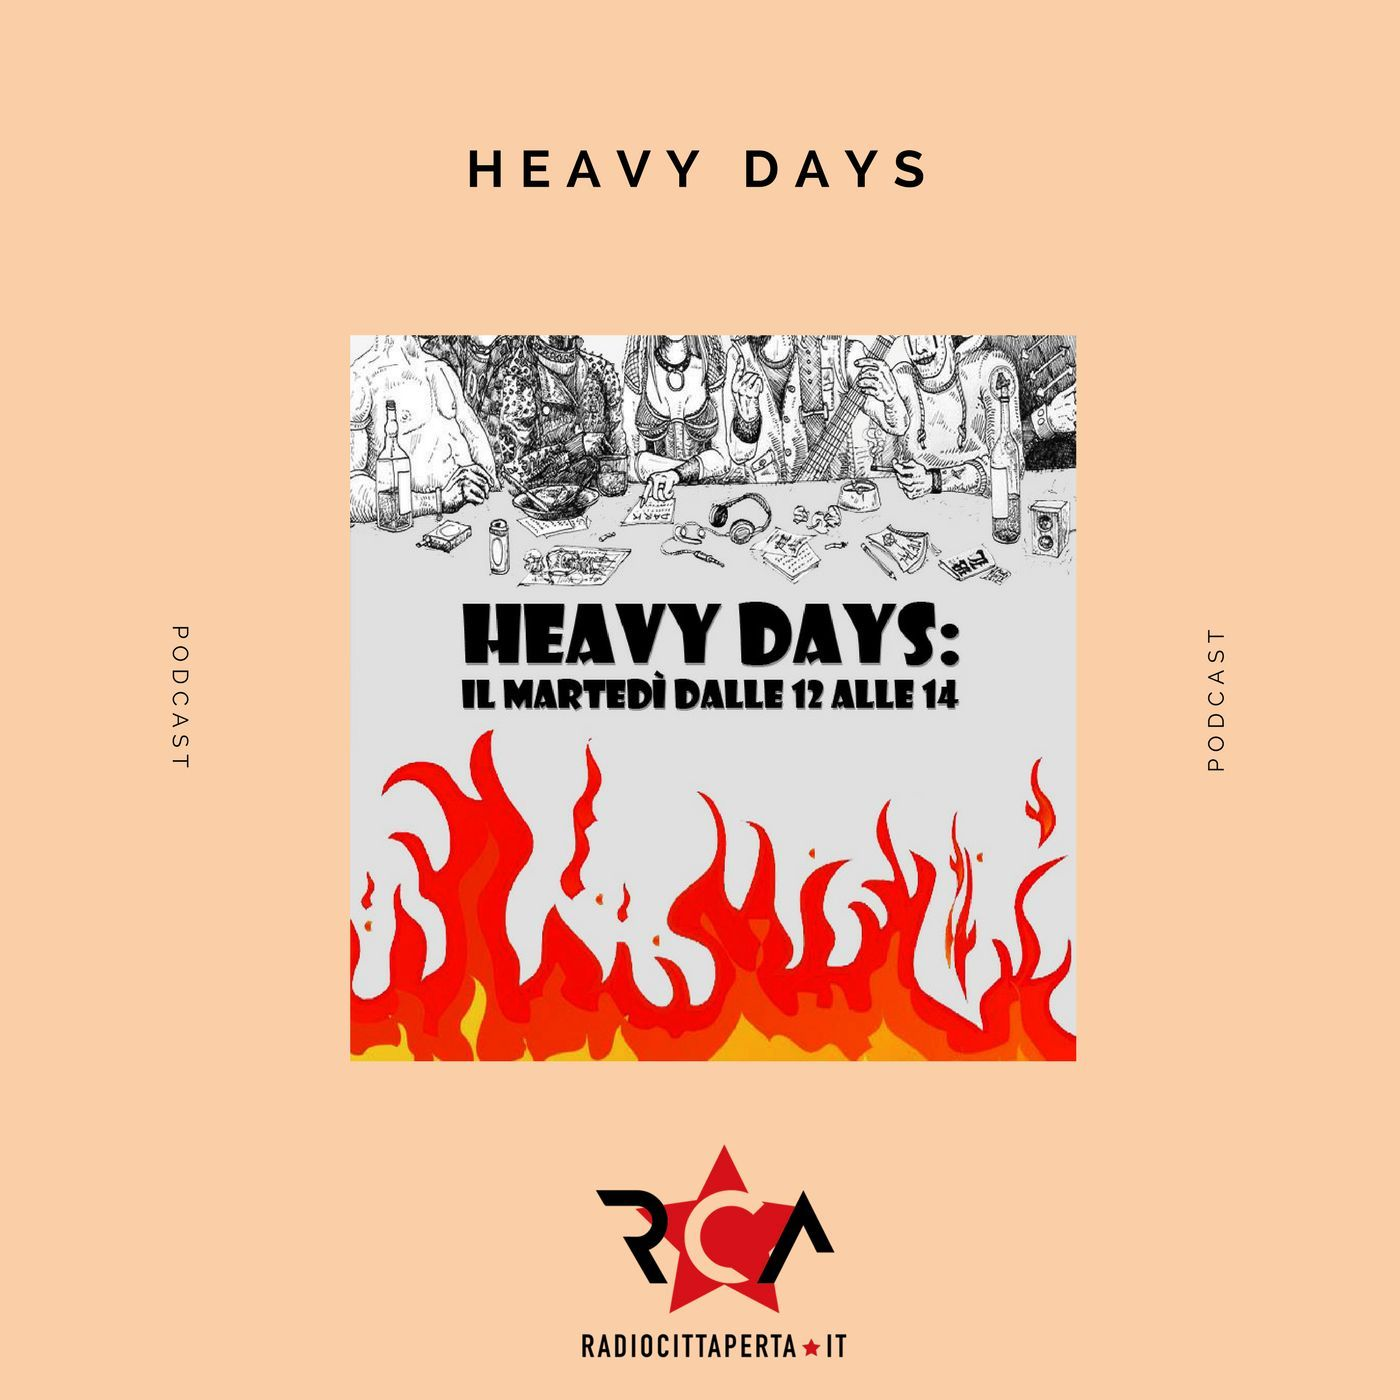 HEAVY DAYS con VINCENZO PRESUTTI del 3-12-2019